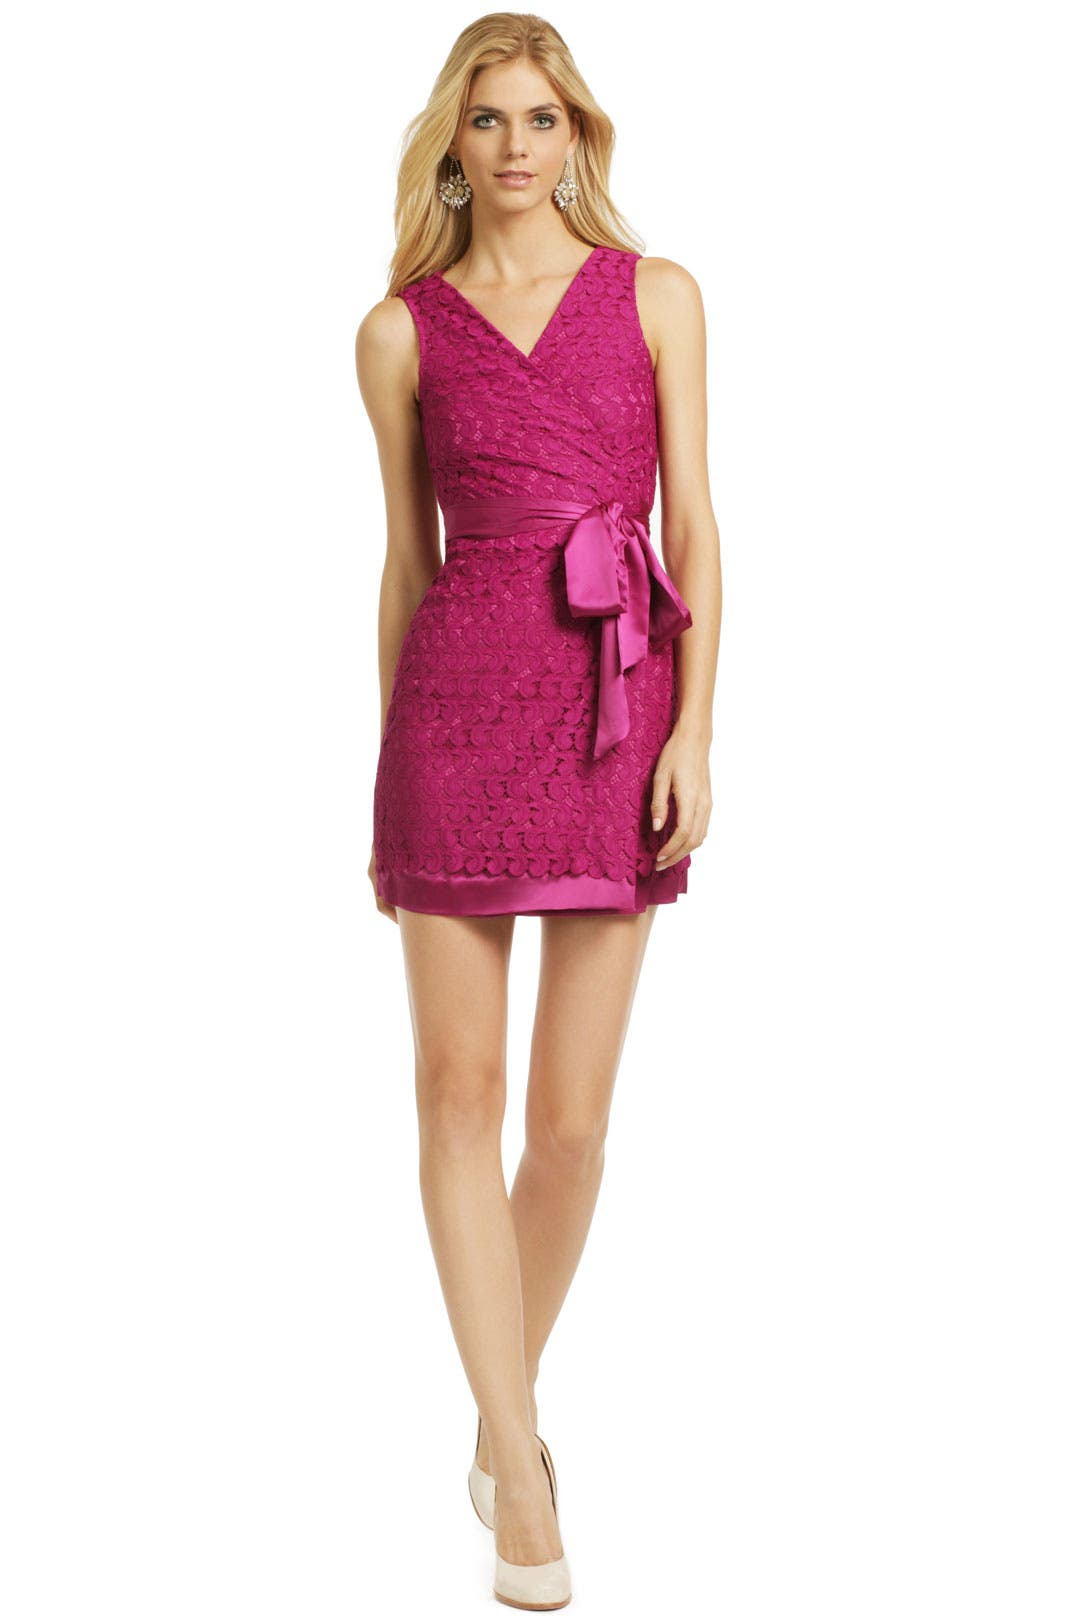 Candy Swirl Dress by Diane von Furstenberg